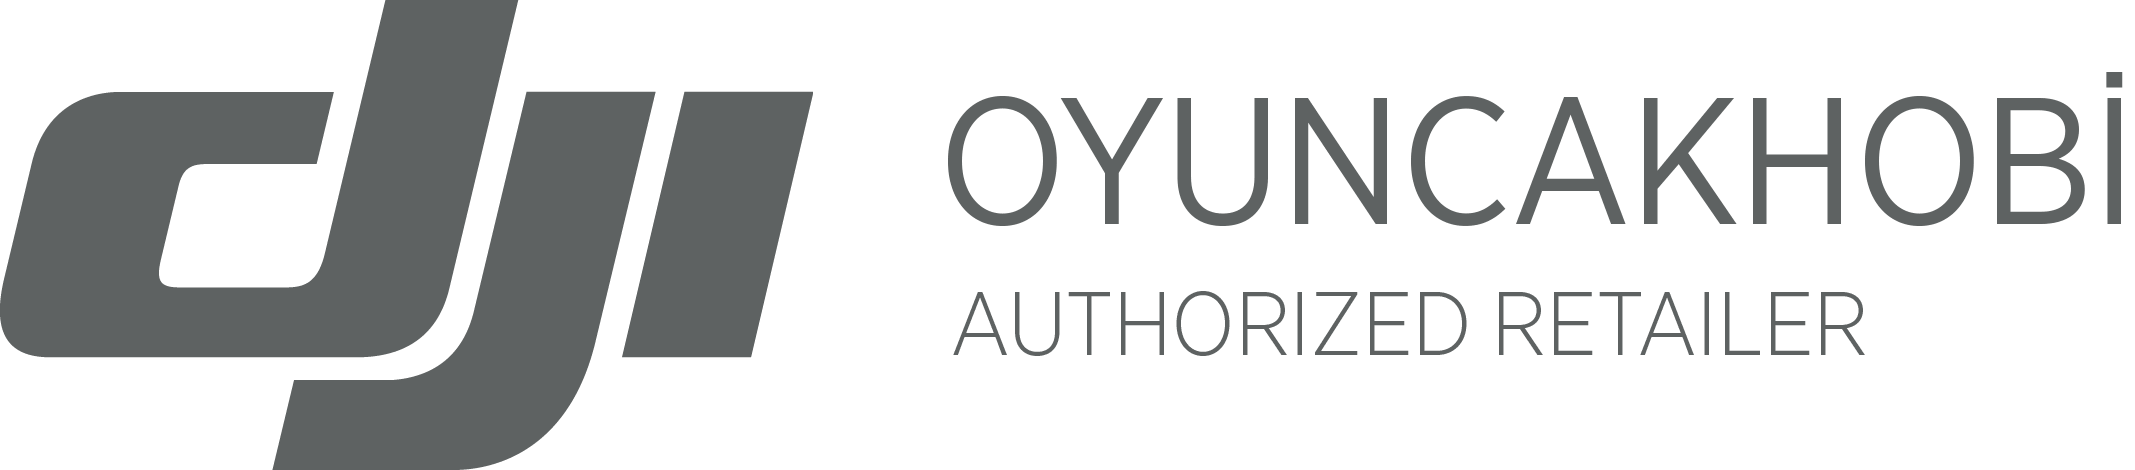 DJI Authorized Retailer - Oyuncakhobi